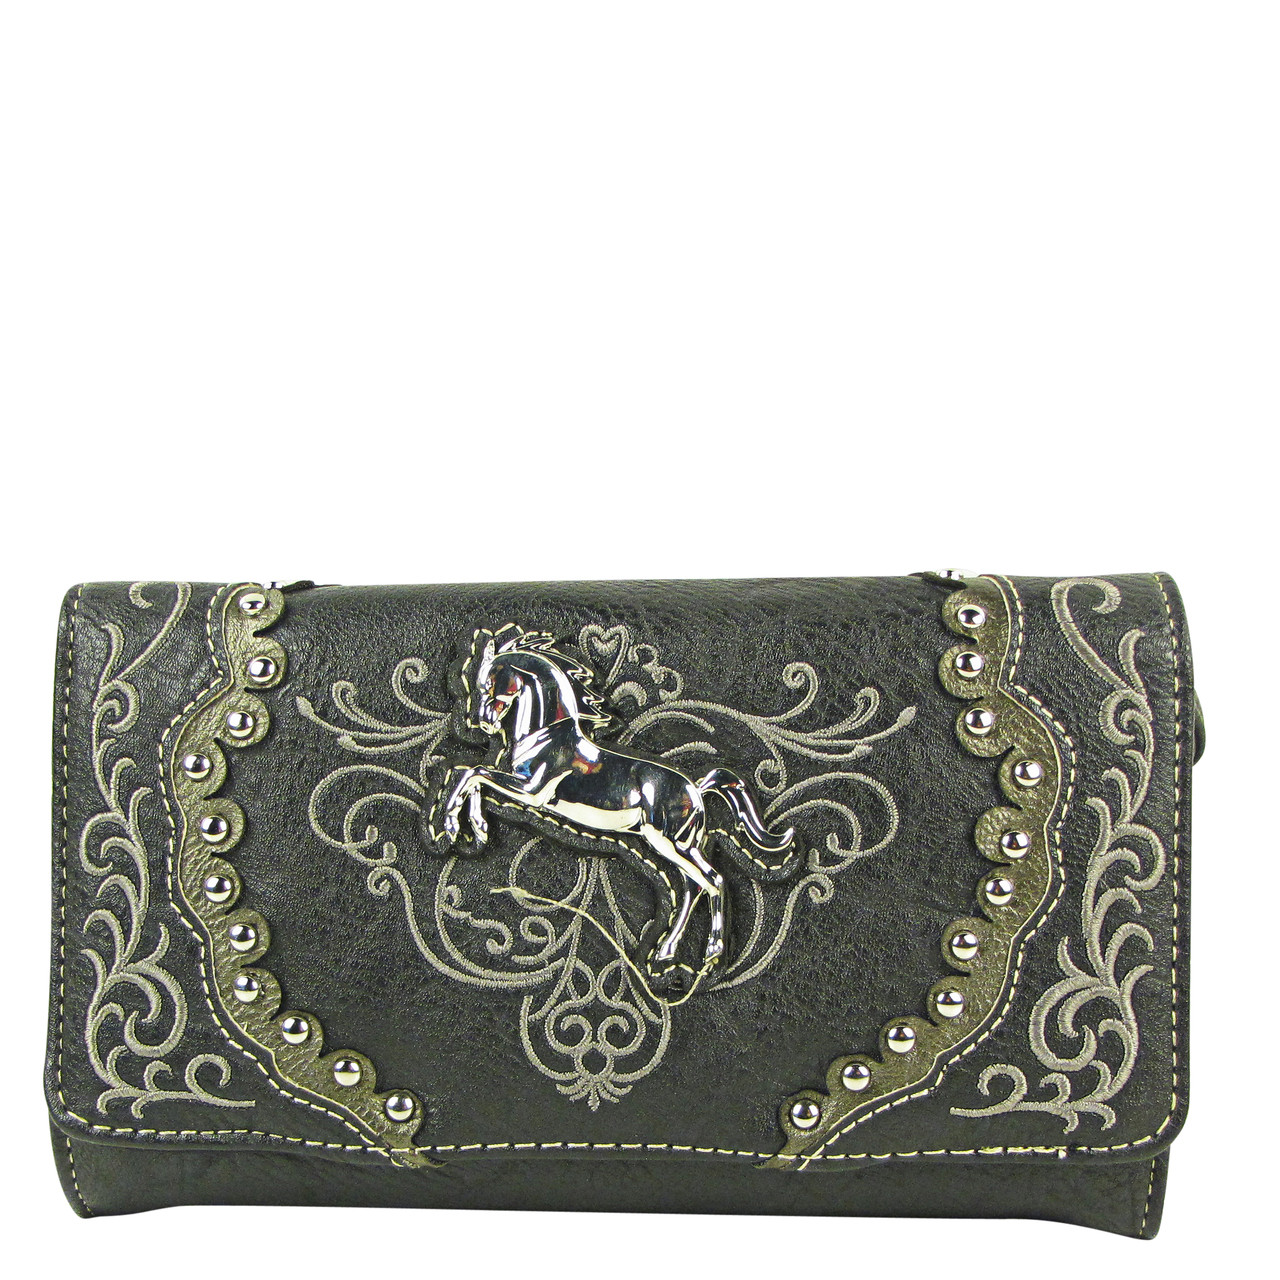 BLACK WESTERN STITCH METAL HORSE LOOK CLUTCH TRIFOLD WALLET CW1-1289BLK